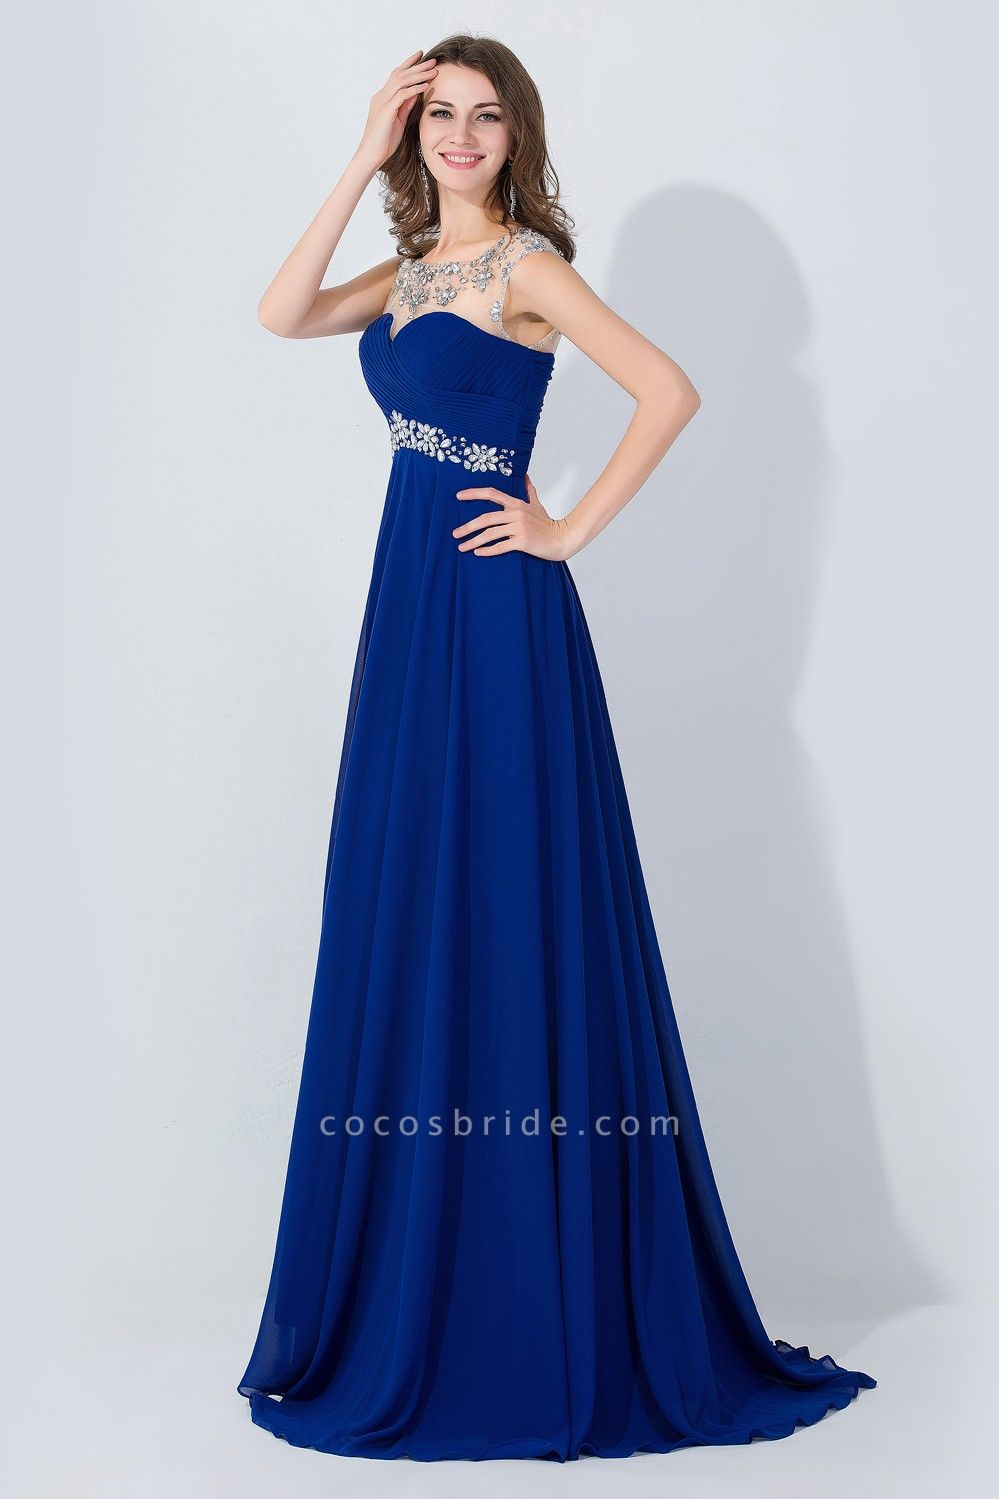 A-line Chiffon Tulle Scoop Sleeveless Floor-Length Bridesmaid Dress With Crystal